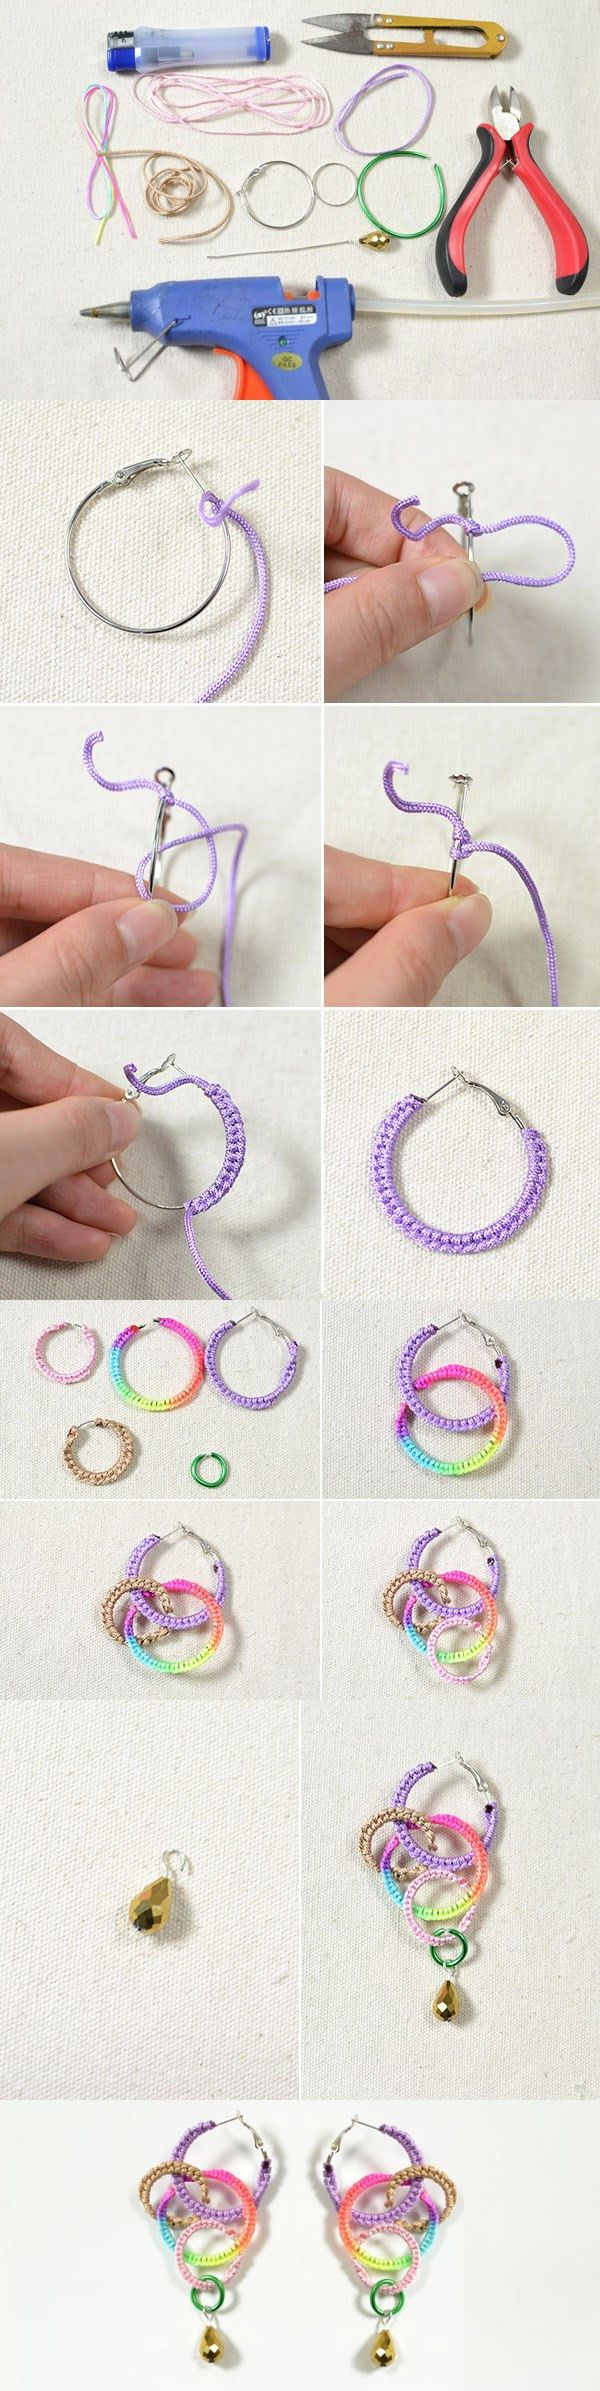 How to Make a Pair of Colorful Woven Thread Earrings in an Easy Way from LC.Pandahall.com